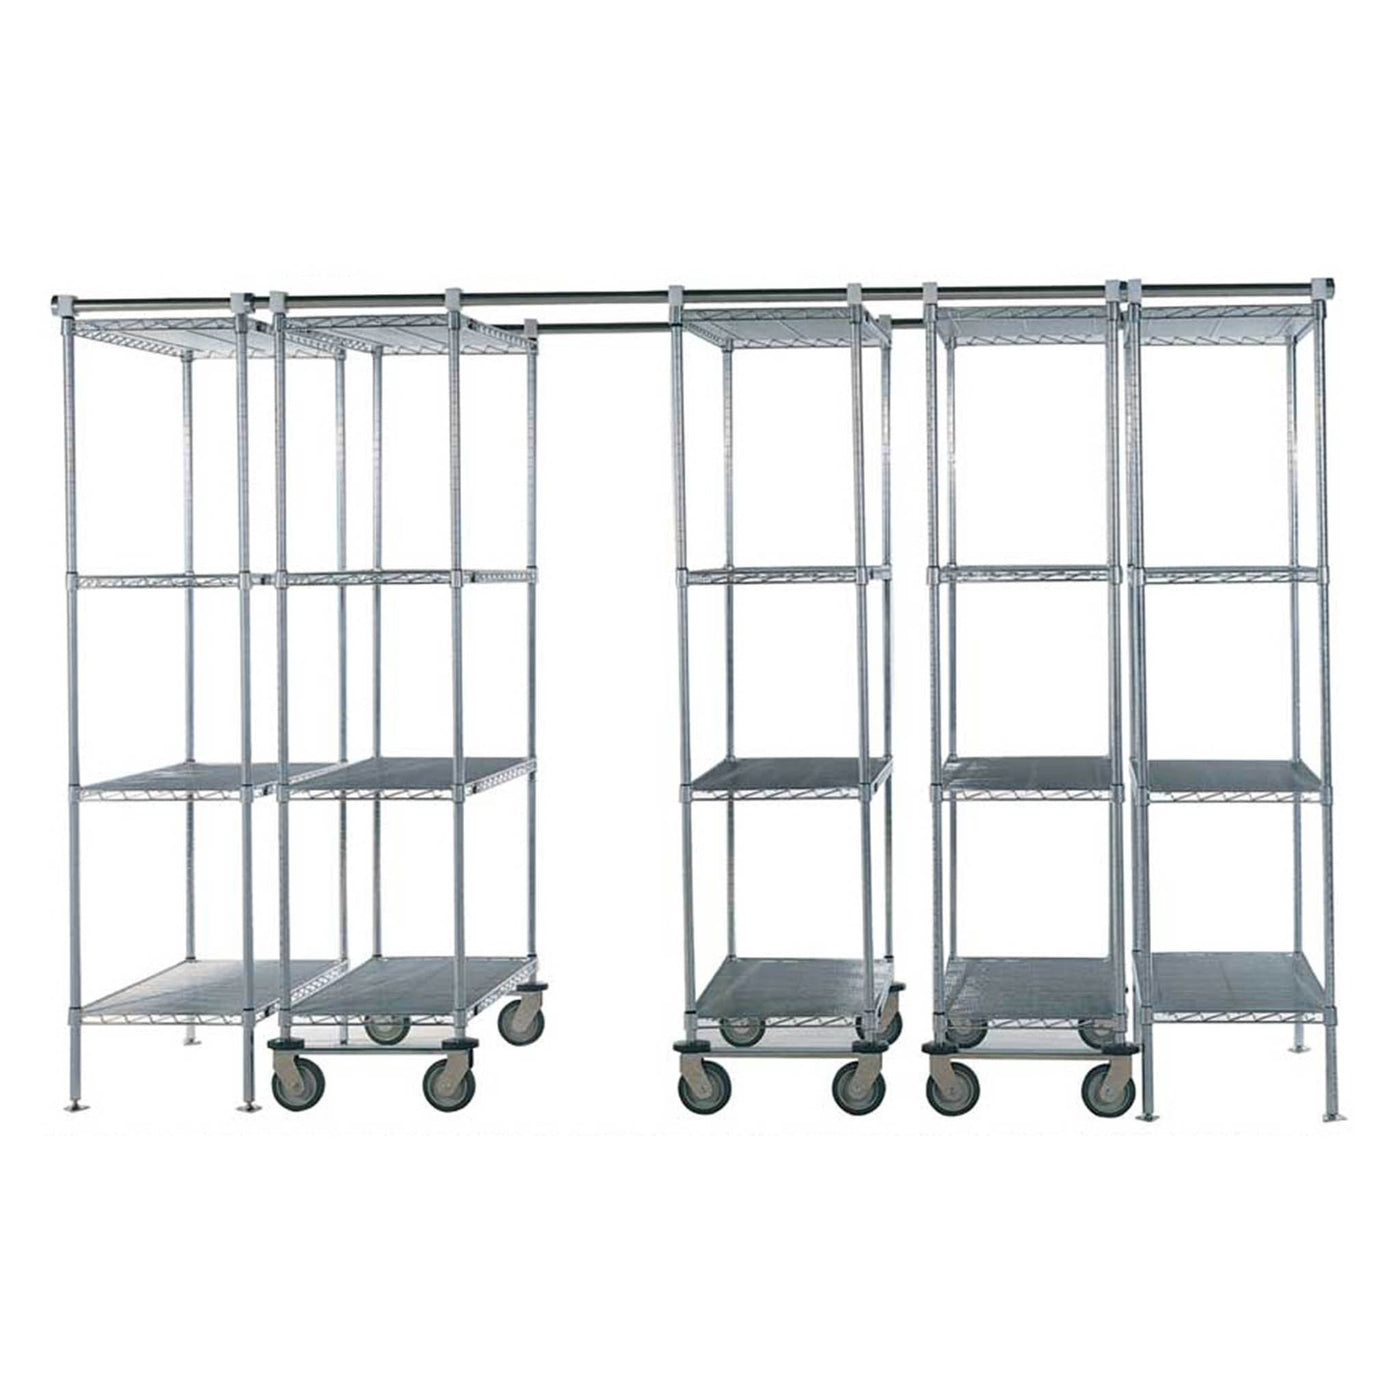 High Density Mobile Shelving System-Cadaver Handling & Storage Systems-Mortech Manufacturing Company Inc. Quality Stainless Steel Autopsy, Morgue, Funeral Home, Necropsy, Veterinary / Anatomy, Dissection Equipment and Accessories